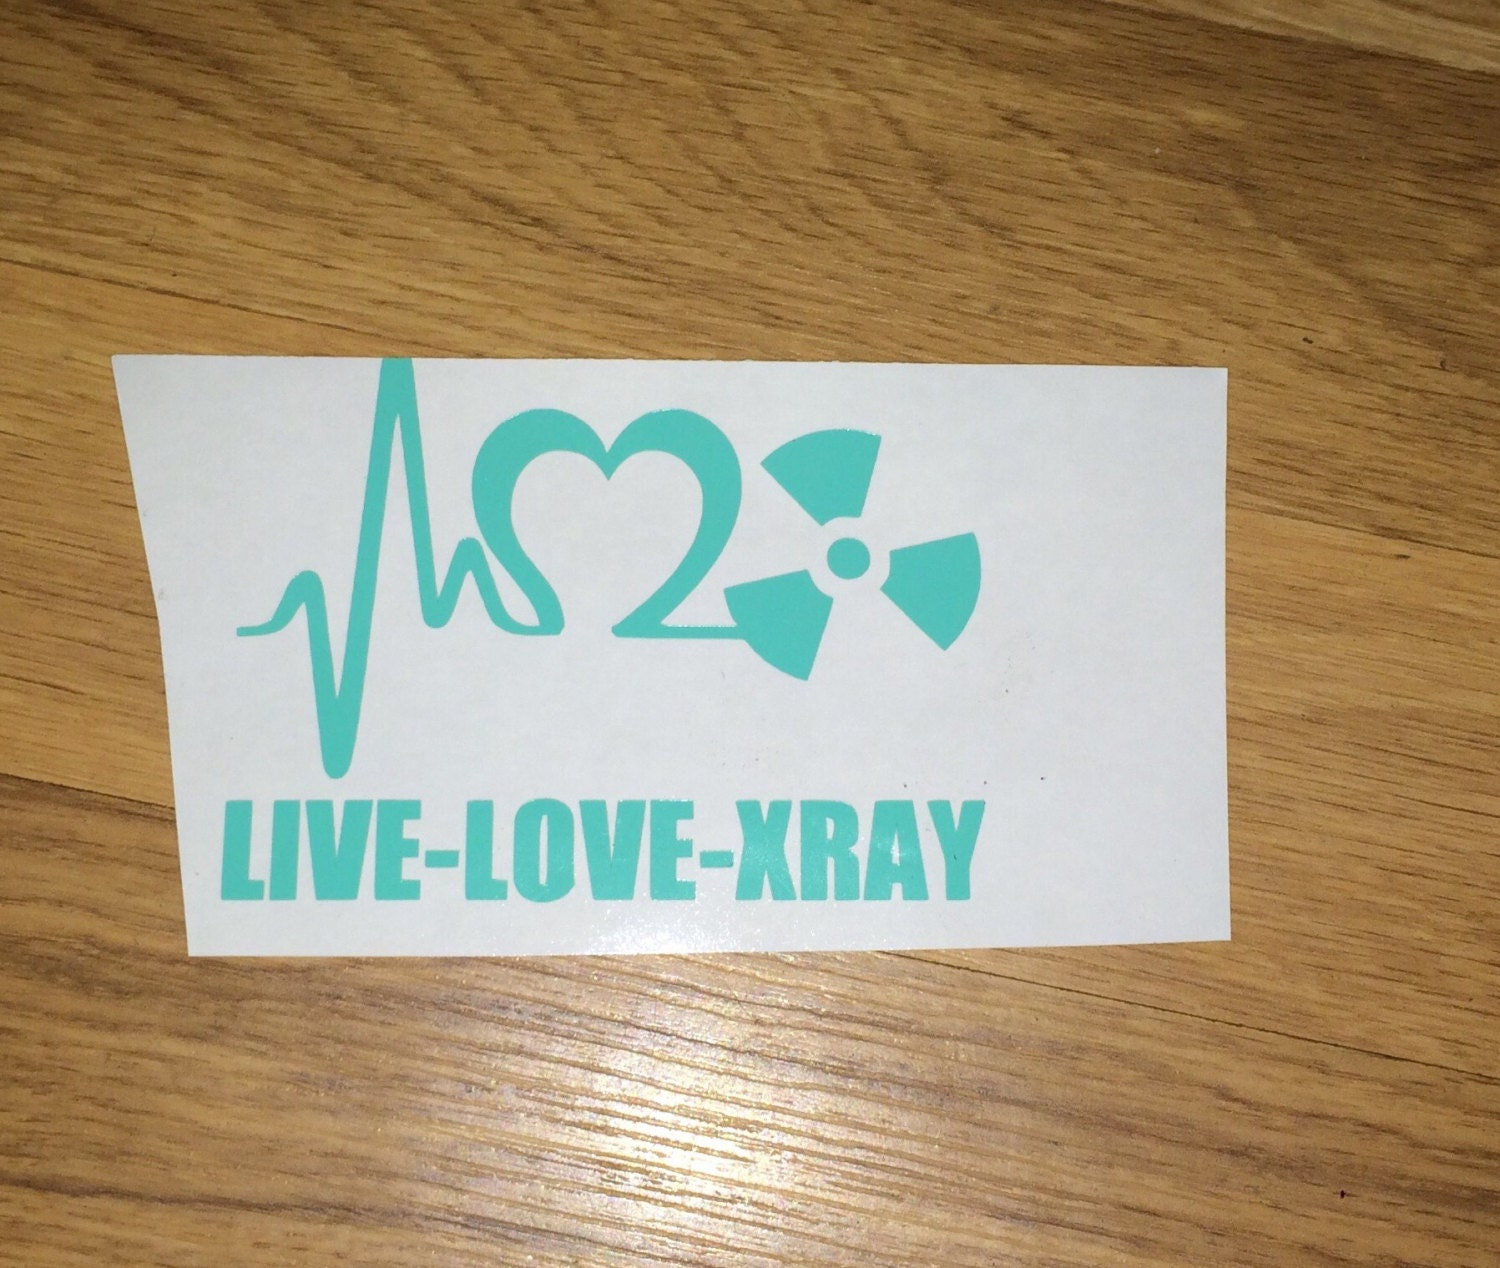 Love xray xray tech radiology decal live love xray xray tech radiology decal buycottarizona Image collections